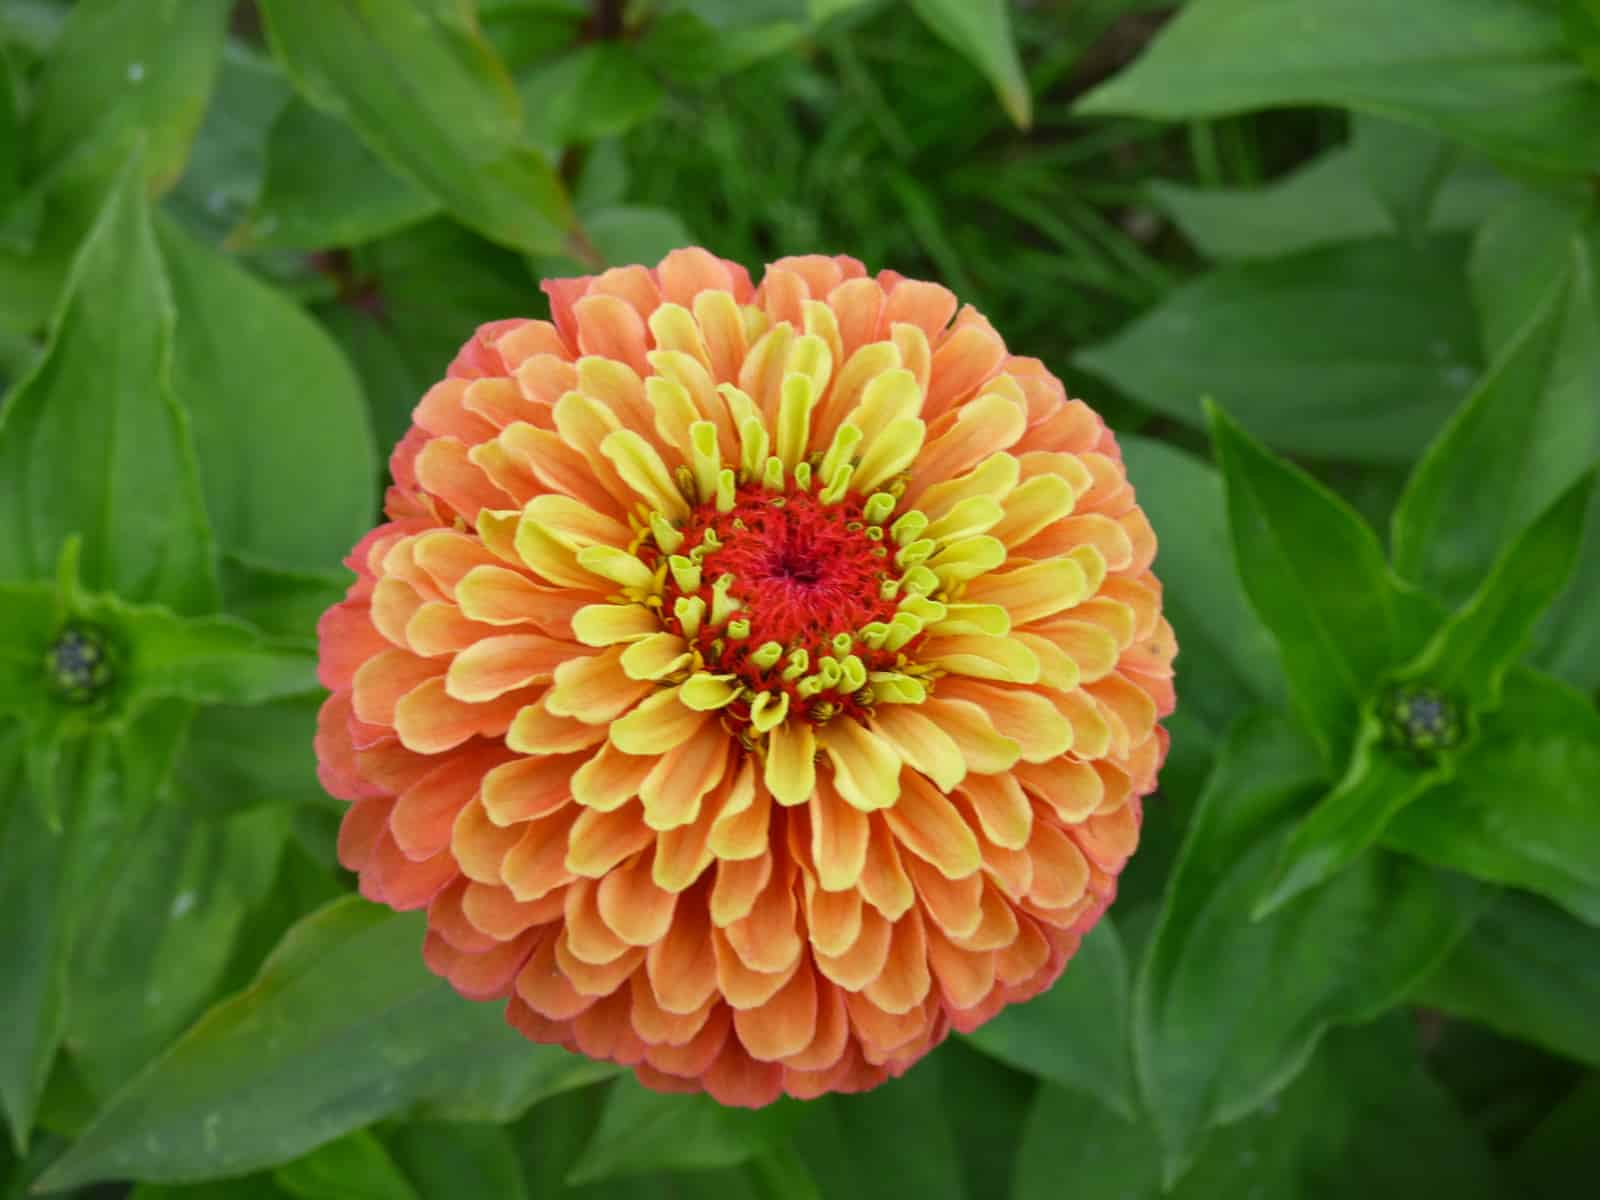 Zinnia queeny lime orange all america selections zinnia queeny lime orange 2018 aas flower winner izmirmasajfo